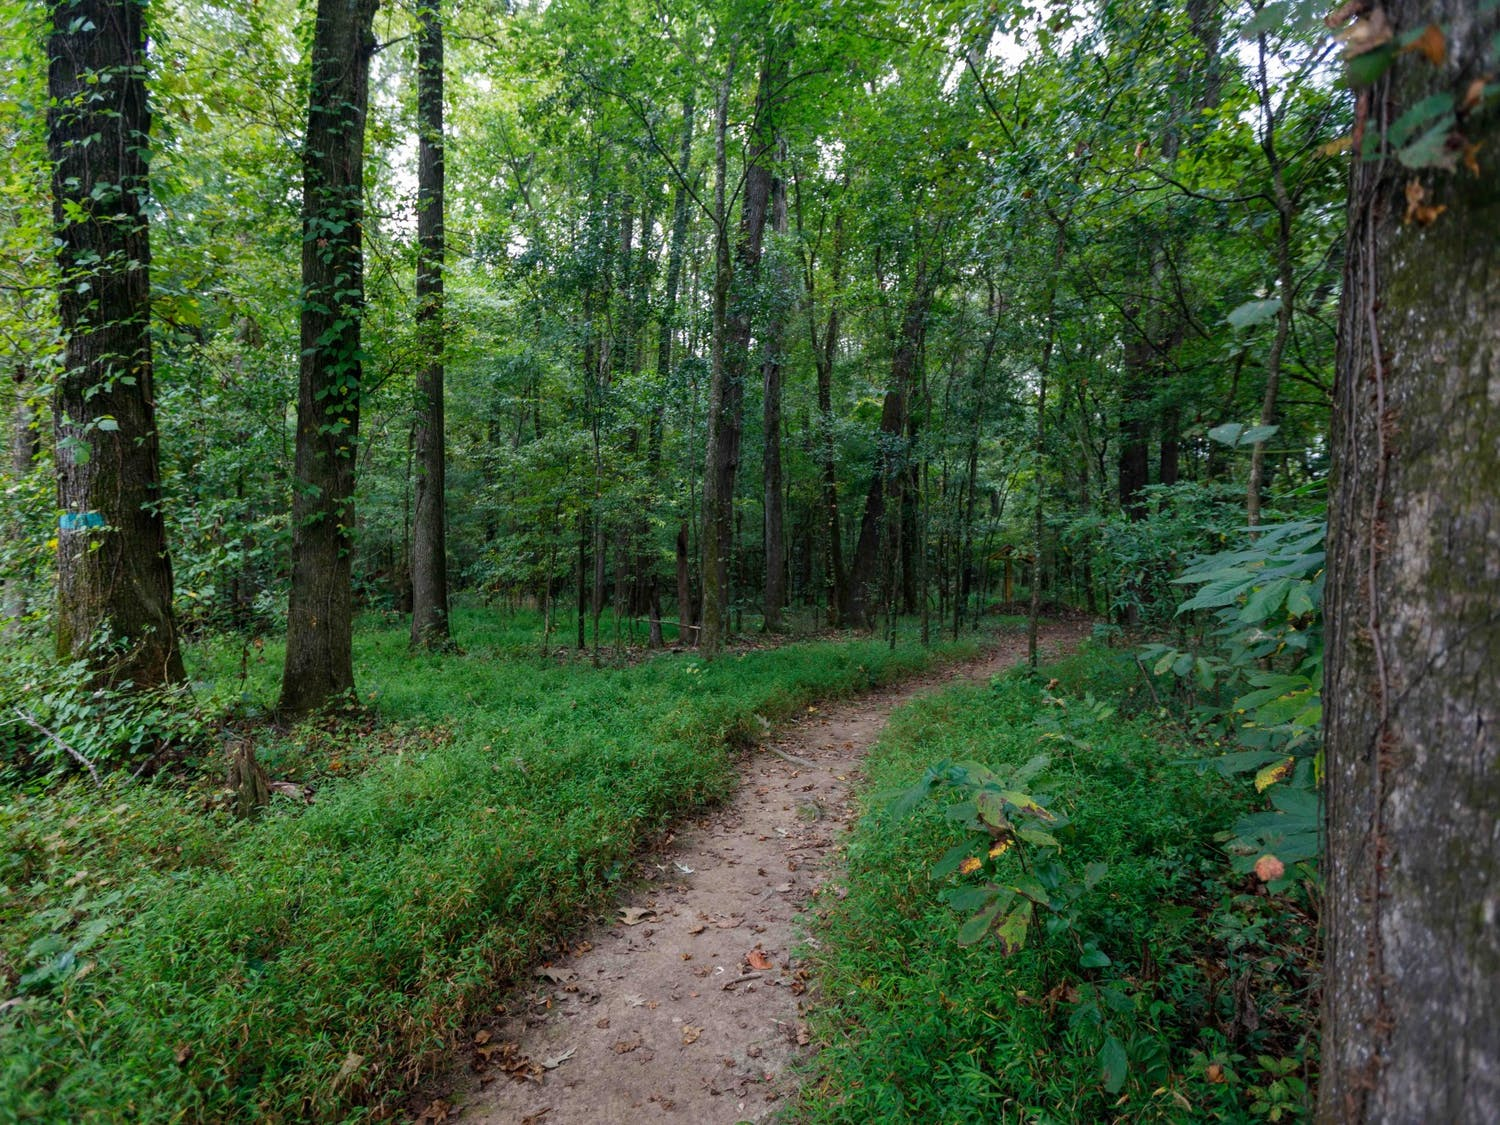 The trail to the Congaree Creek Heritage Preserve is surrounded by tall trees, wildlife and the scent of pine.